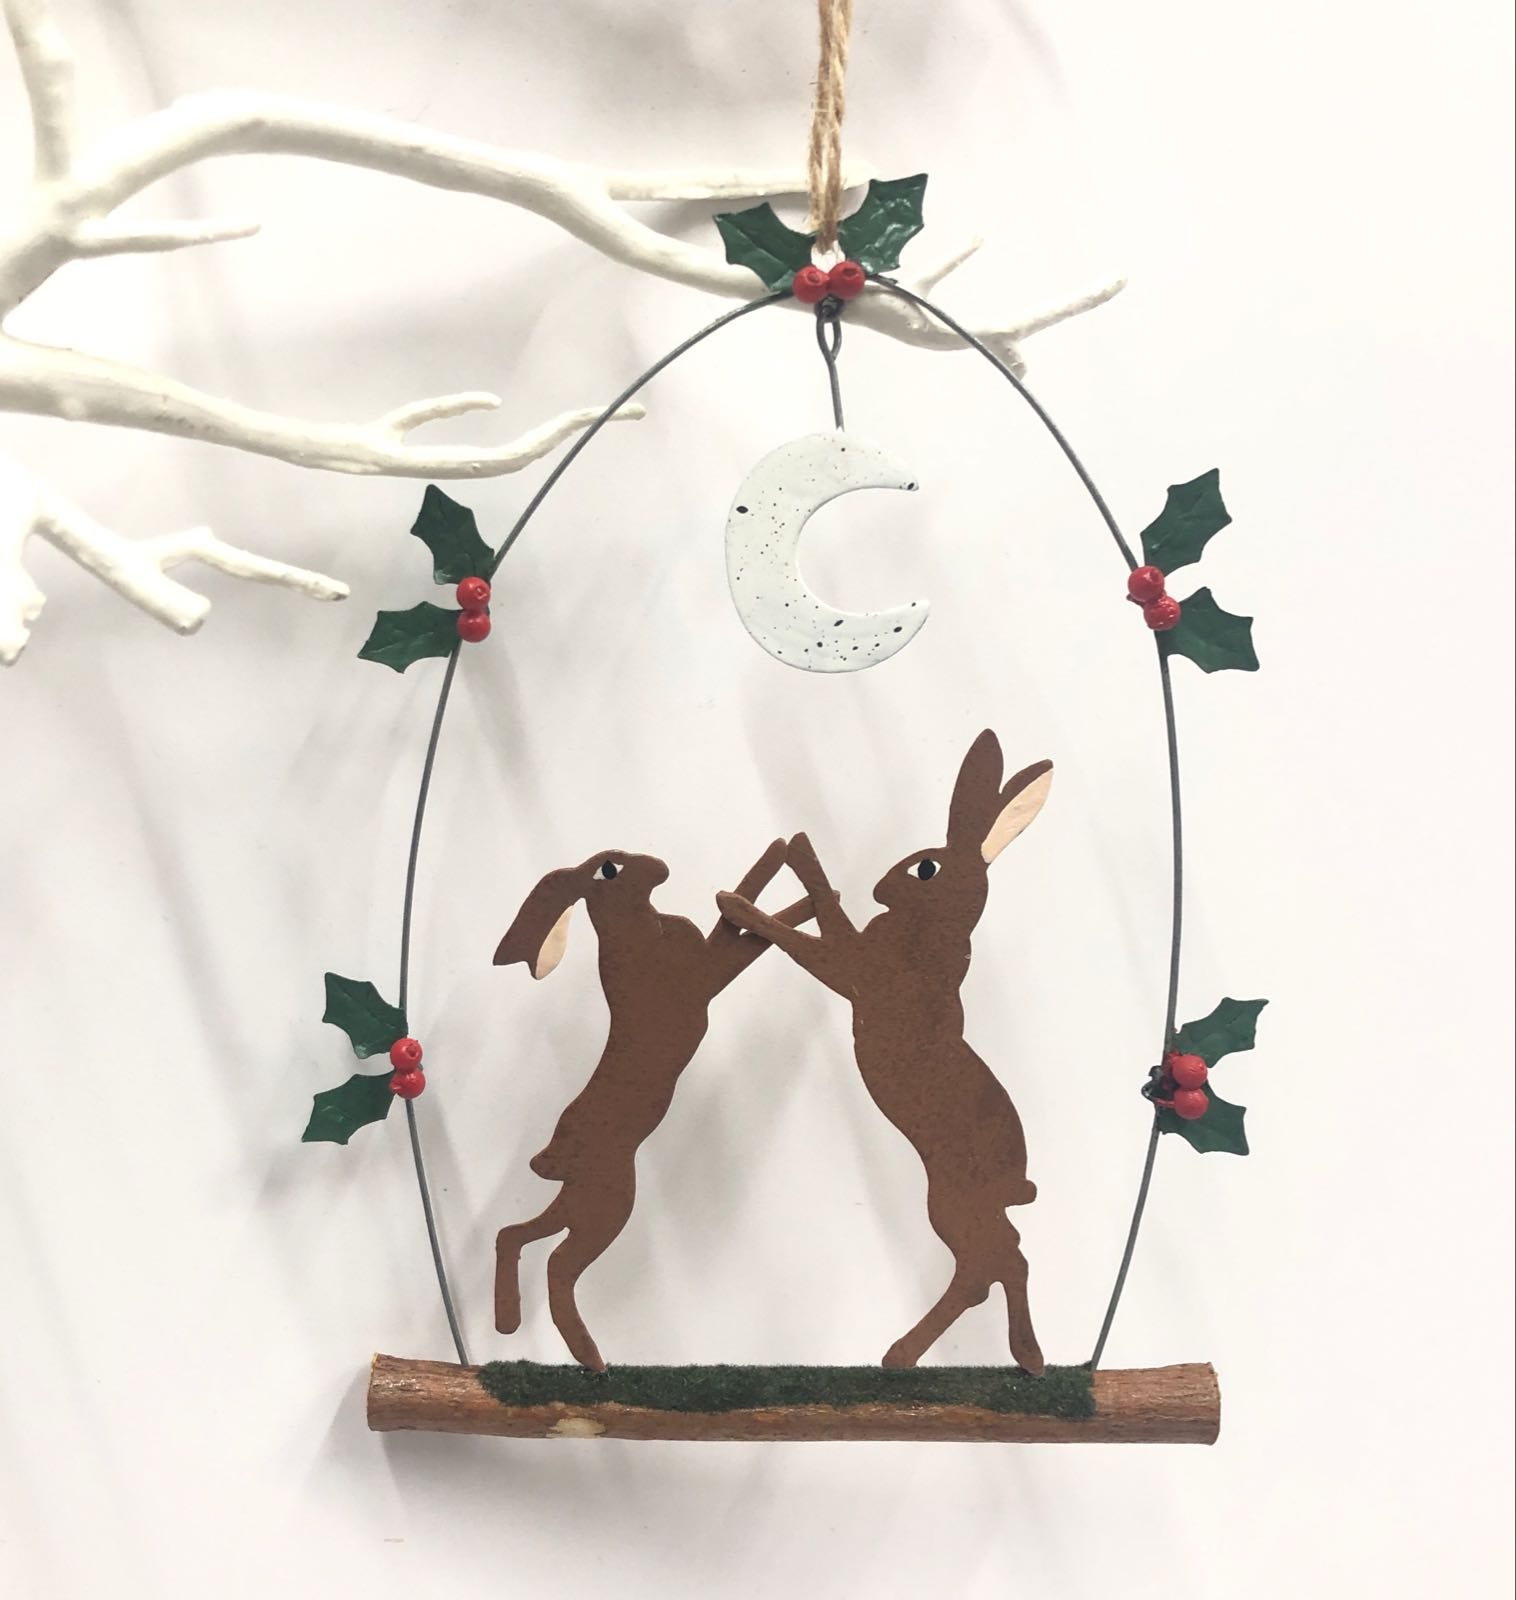 Boxing hares under the moon. Hanging Christmas decoration by shoeless joe